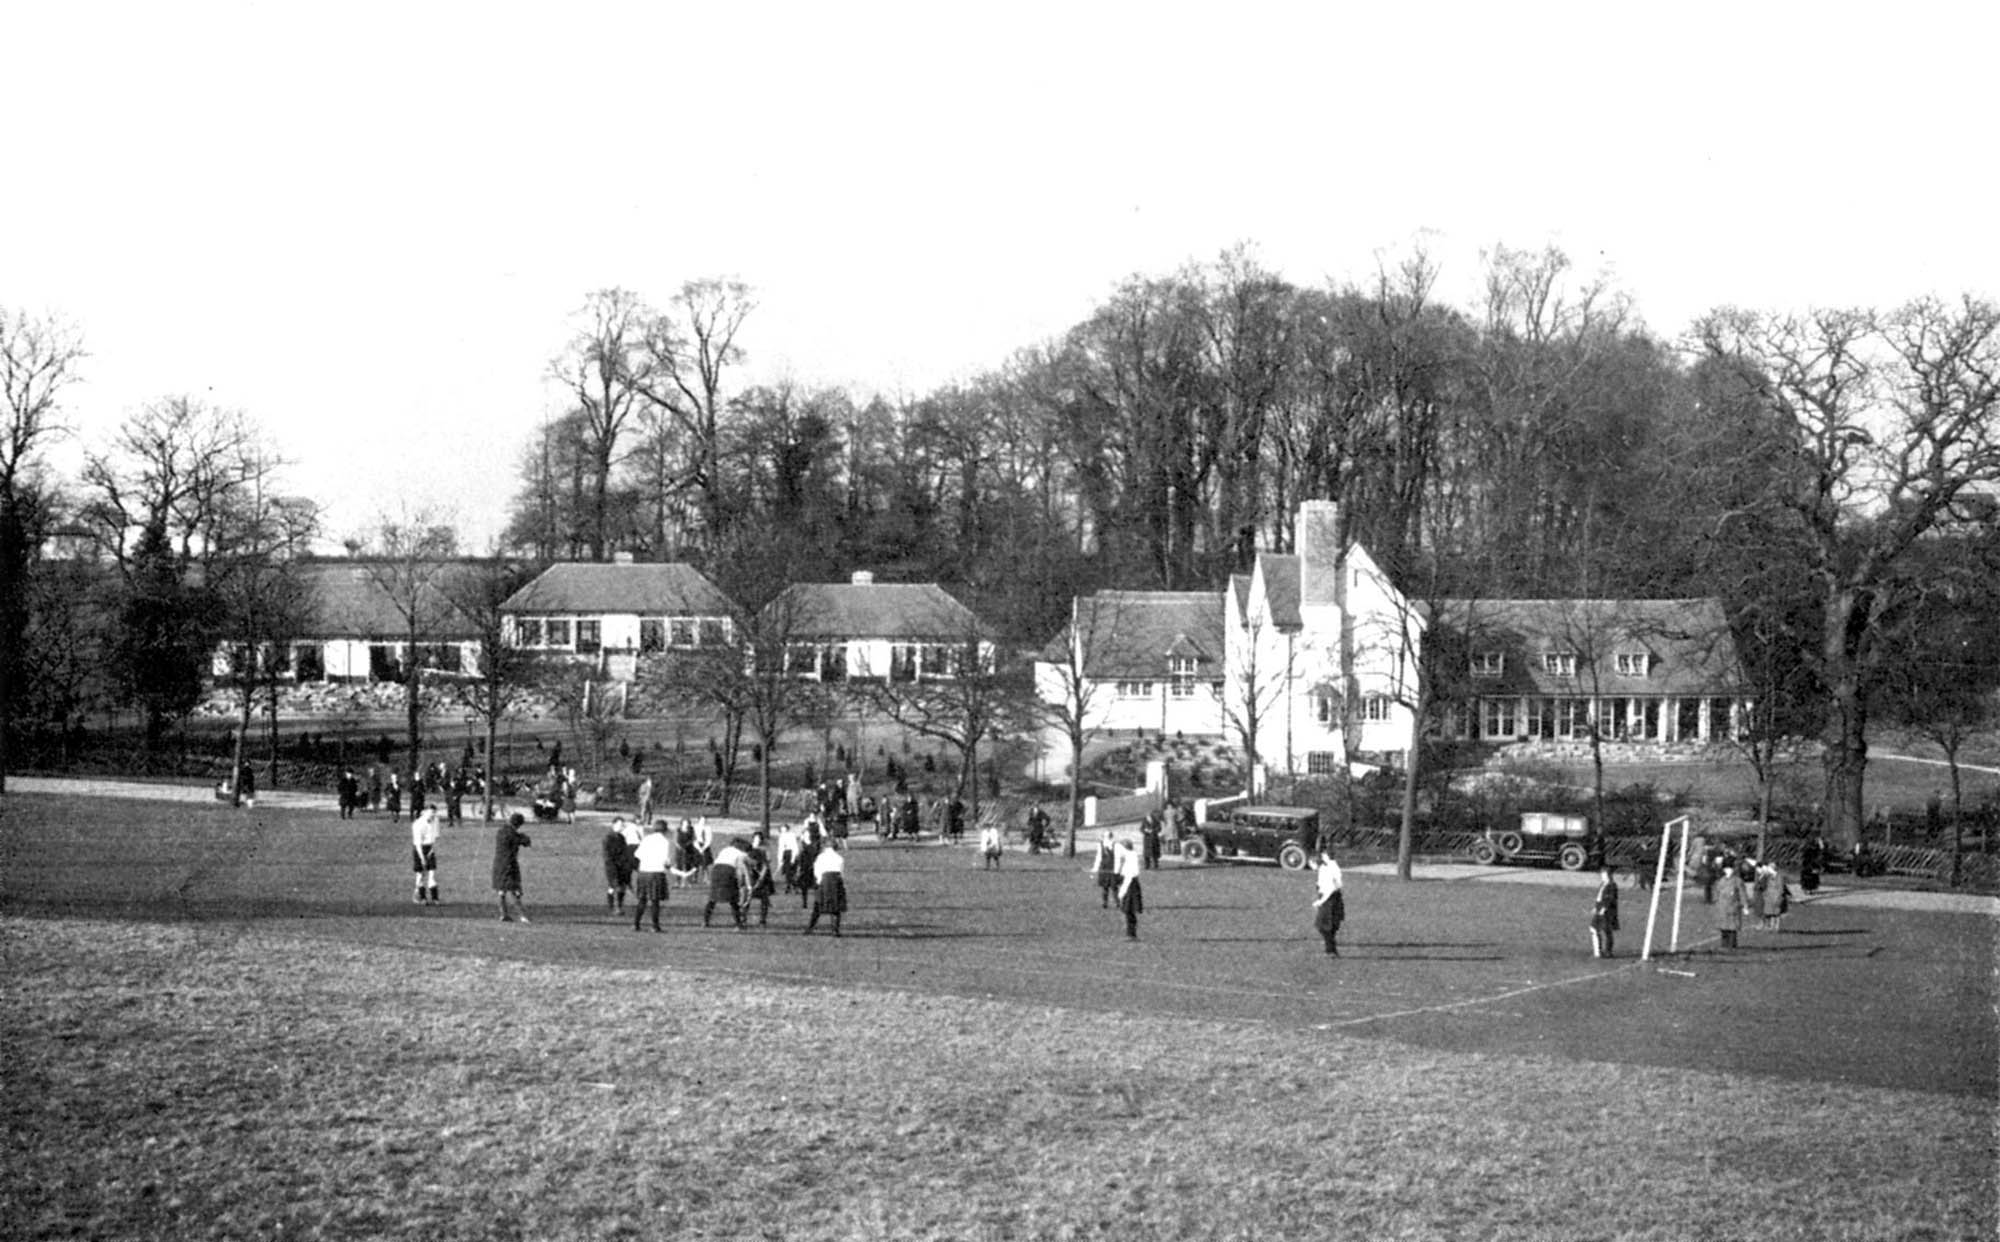 Pupils playing sports with the school buildings in the background, circa 1930s -